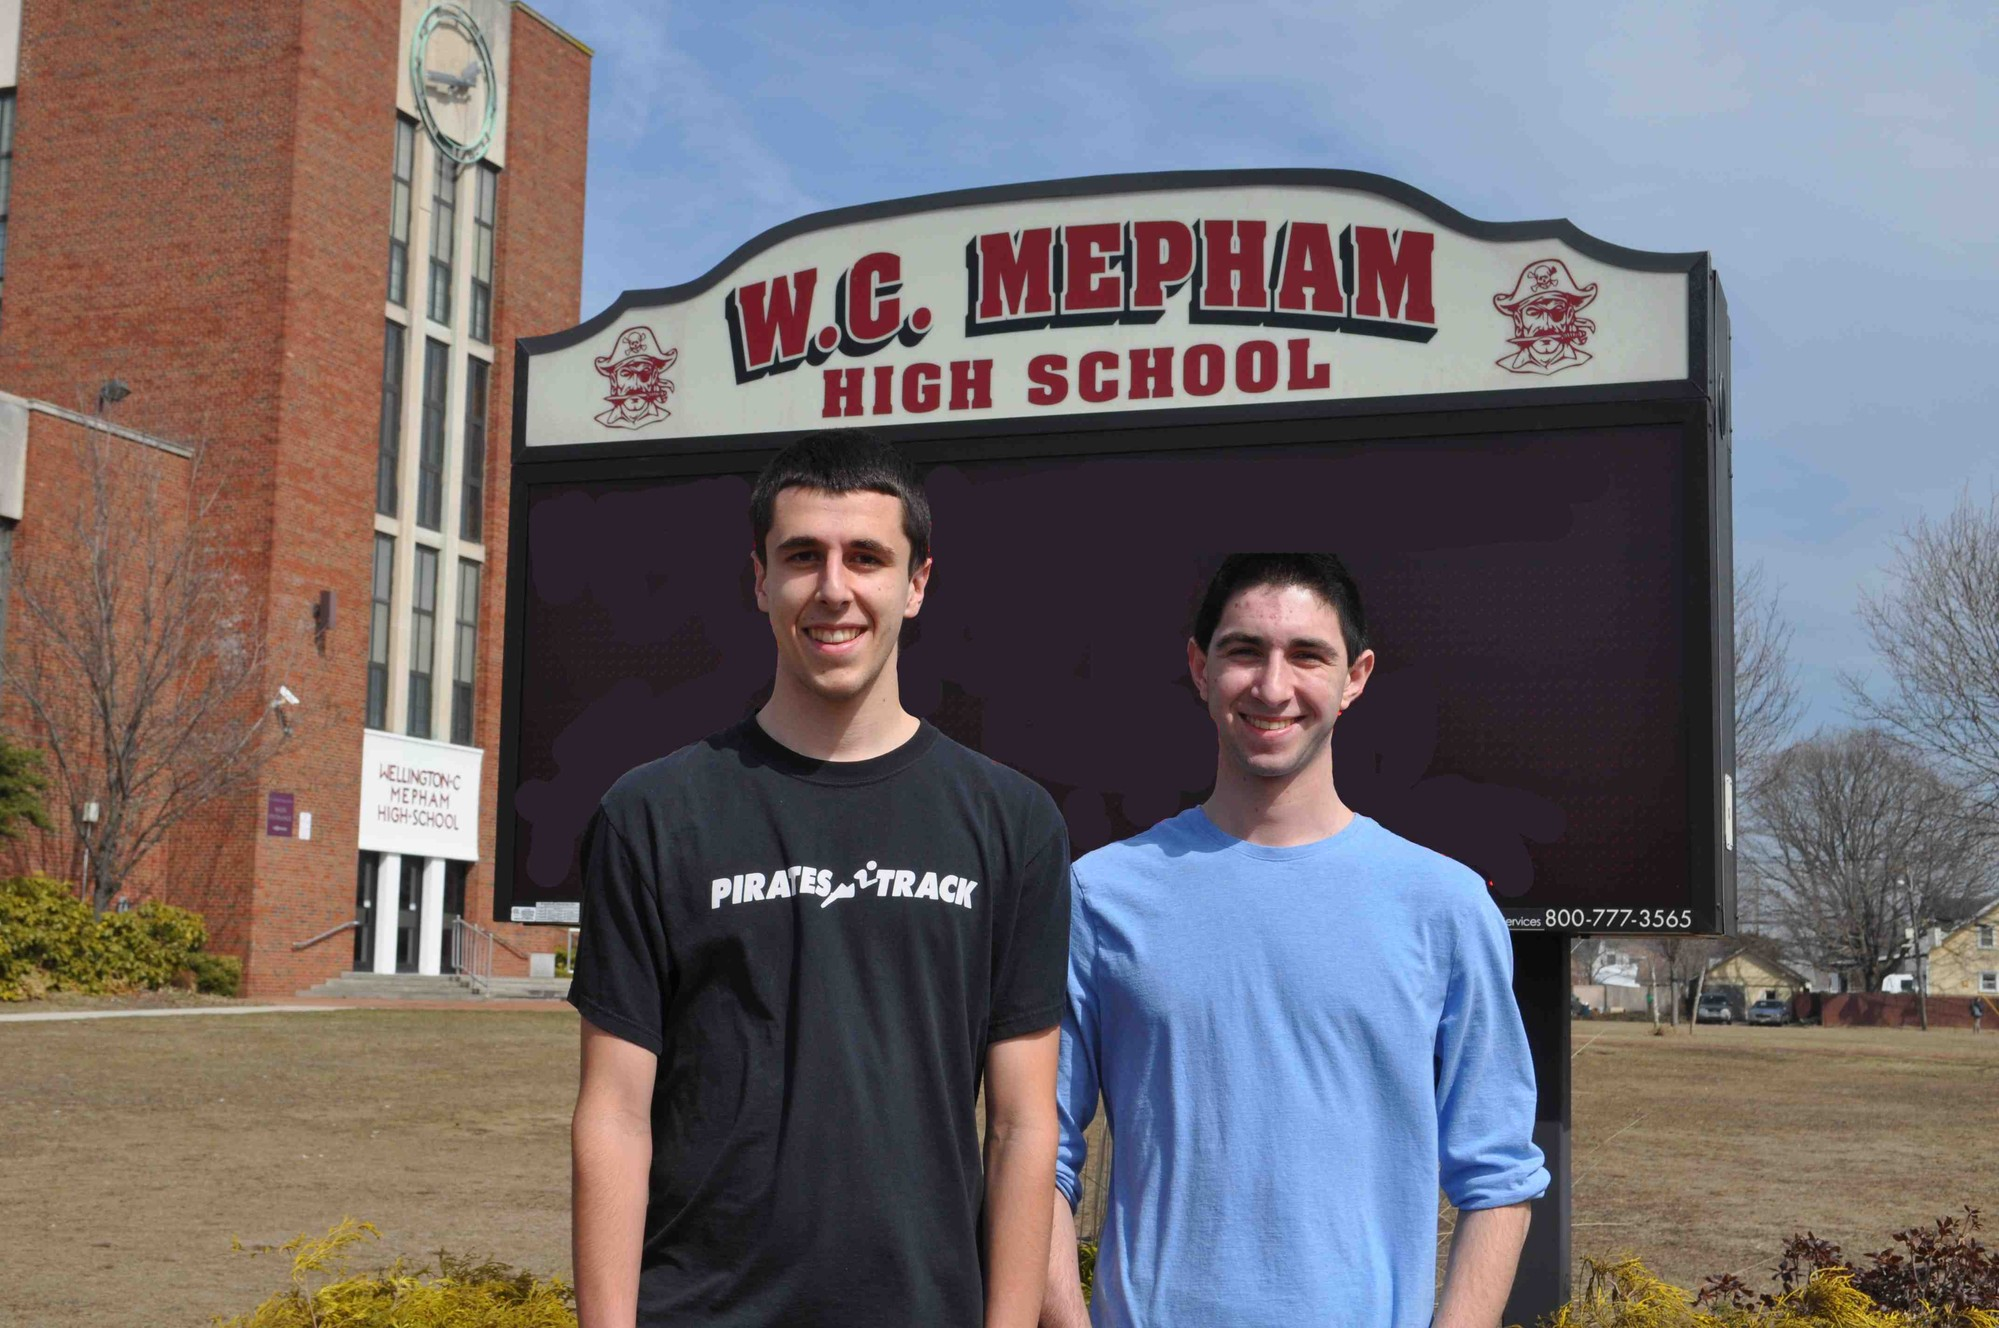 Brian Keohane and Matthew Waldmann have been recognized as Mepham High School's valedictorian and salutatorian, respectively.